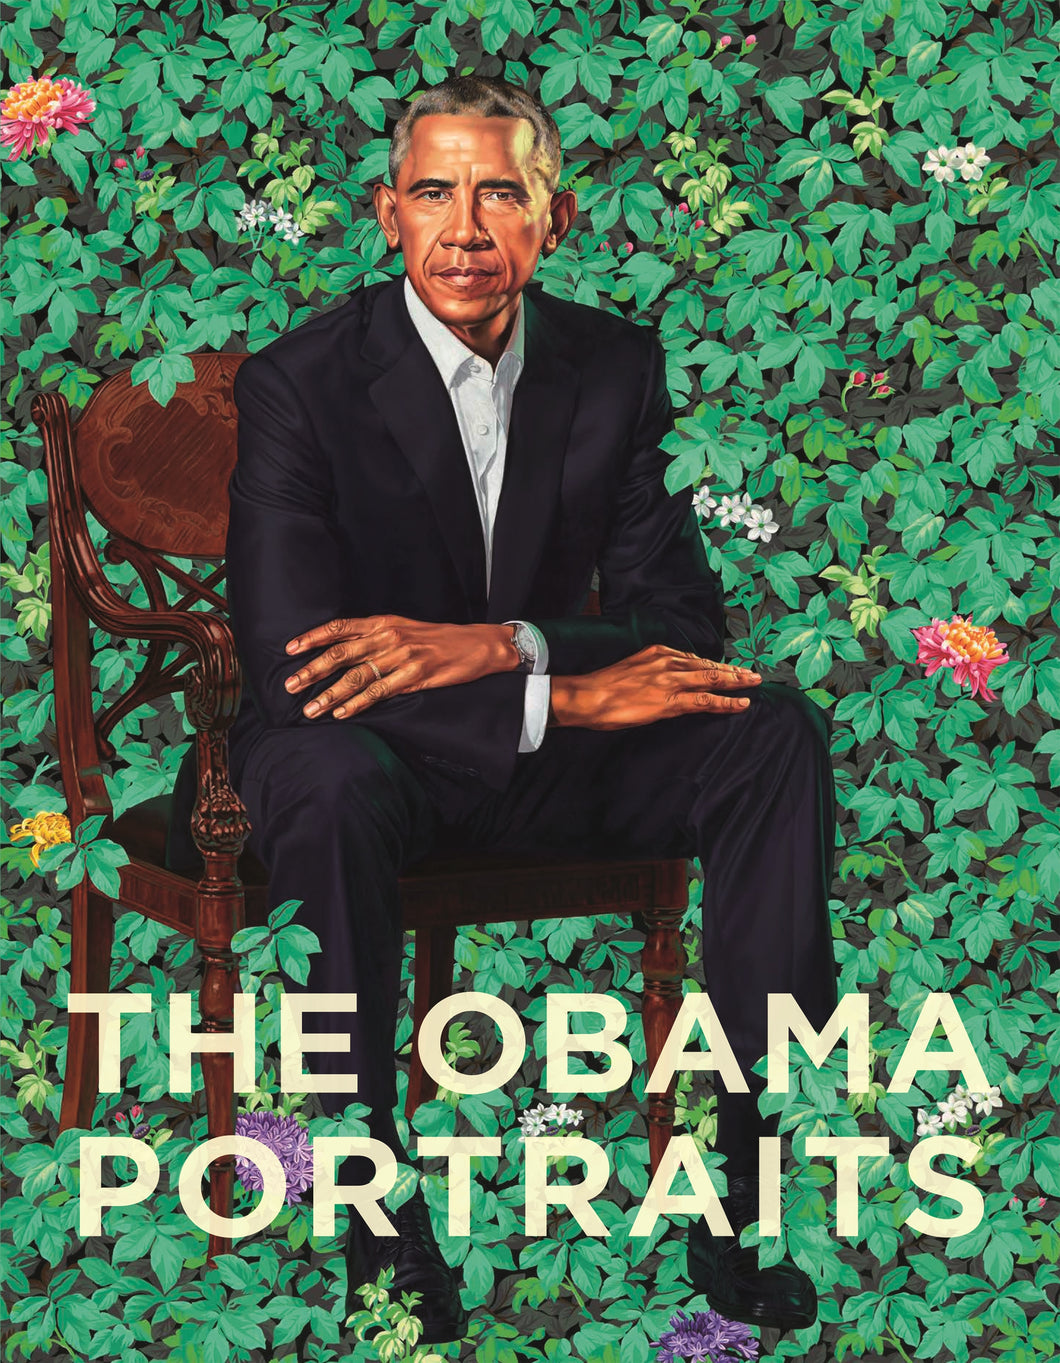 The Obama Portraits